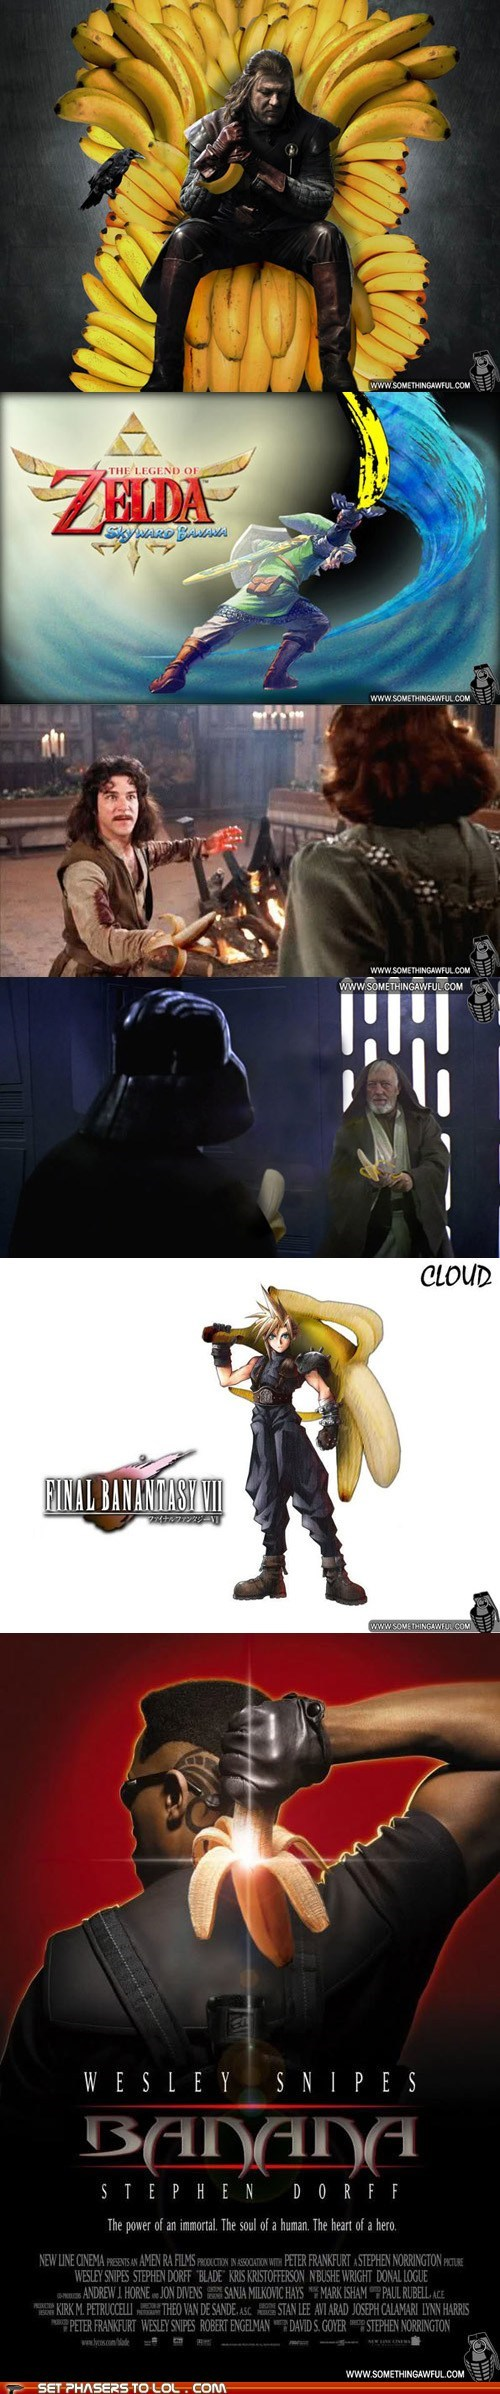 bananas,blade,cloud,Eddard Stark,final fantasy VII,Game of Thrones,link,photoshop,sean bean,silly,Skyward Sword,star wars,the princess bride,zelda